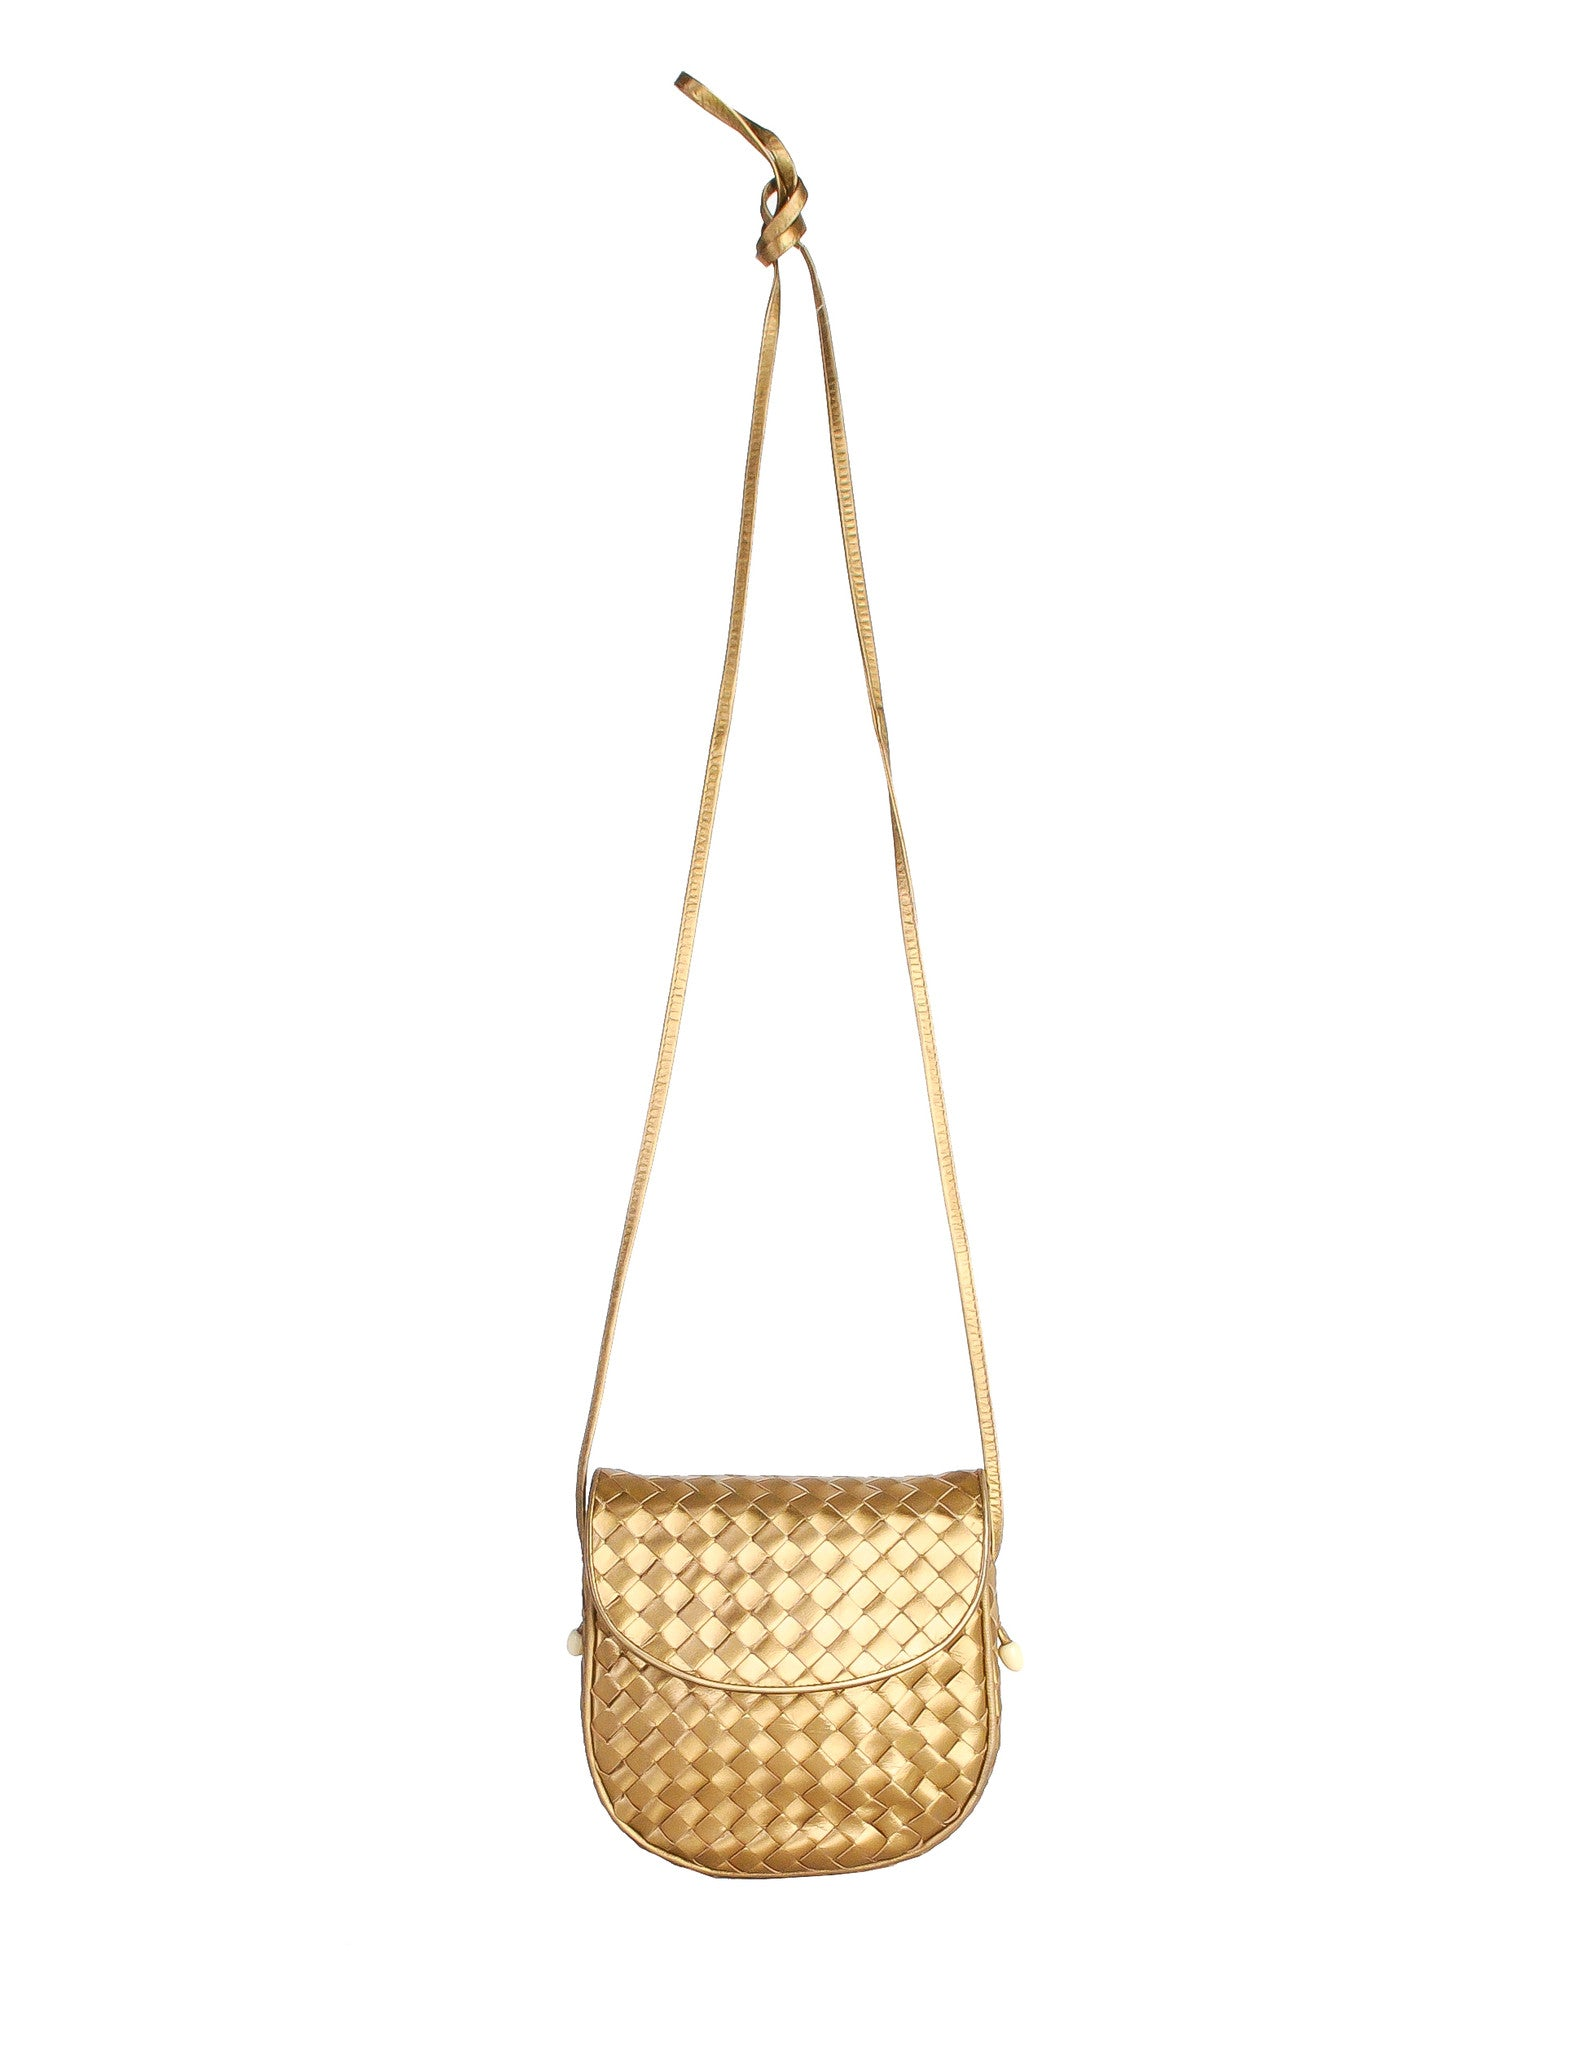 Bottega Veneta Vintage Intrecciato Gold Woven Leather Crossbody Bag - Amarcord Vintage Fashion  - 1